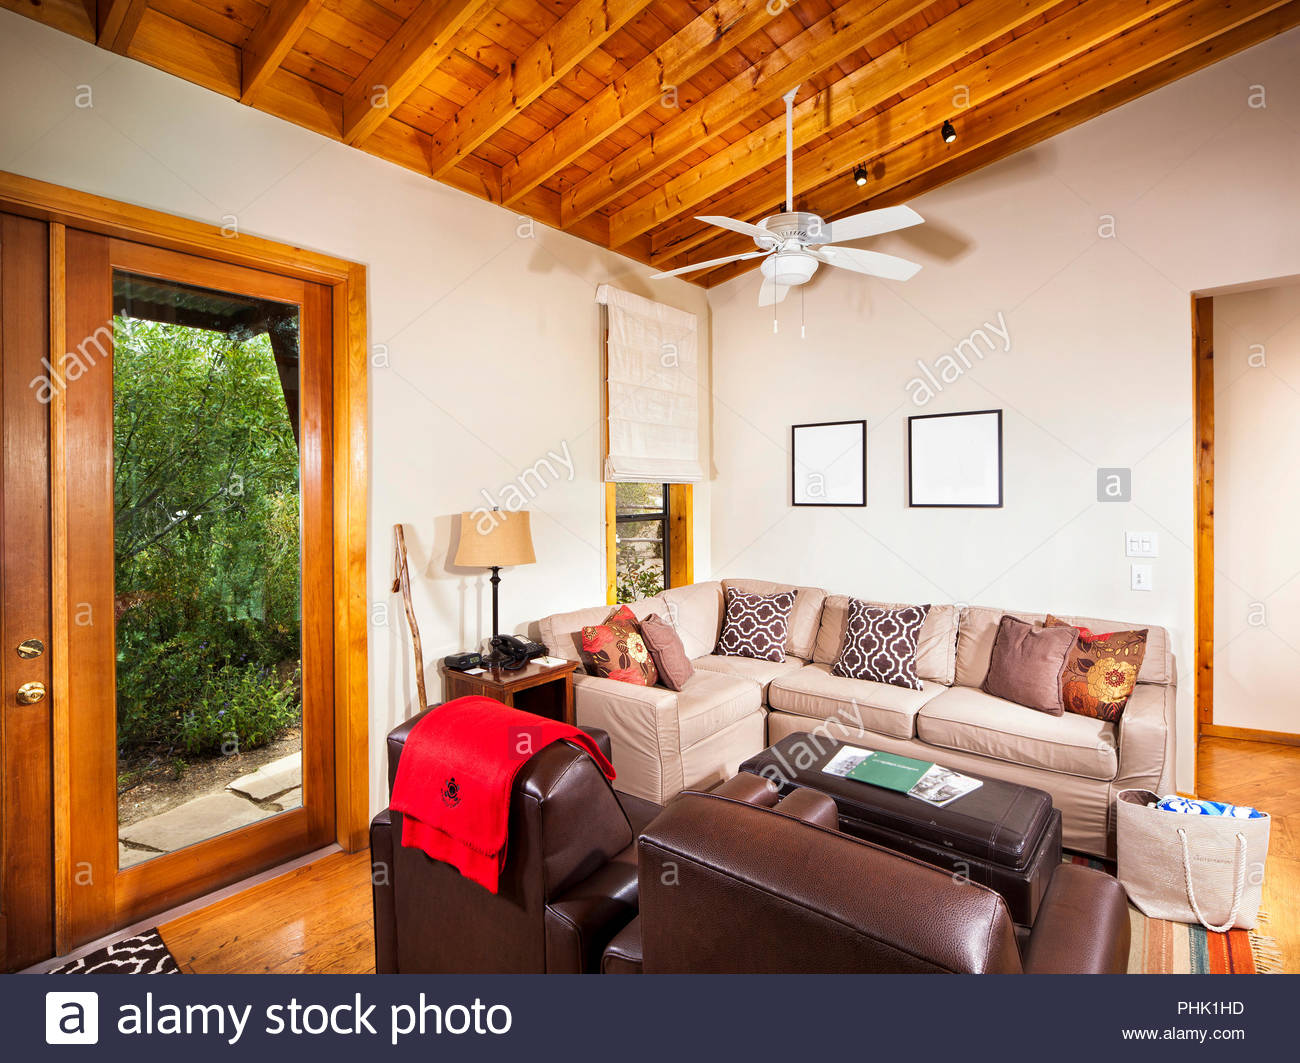 Living room with wooden ceiling - Stock Image